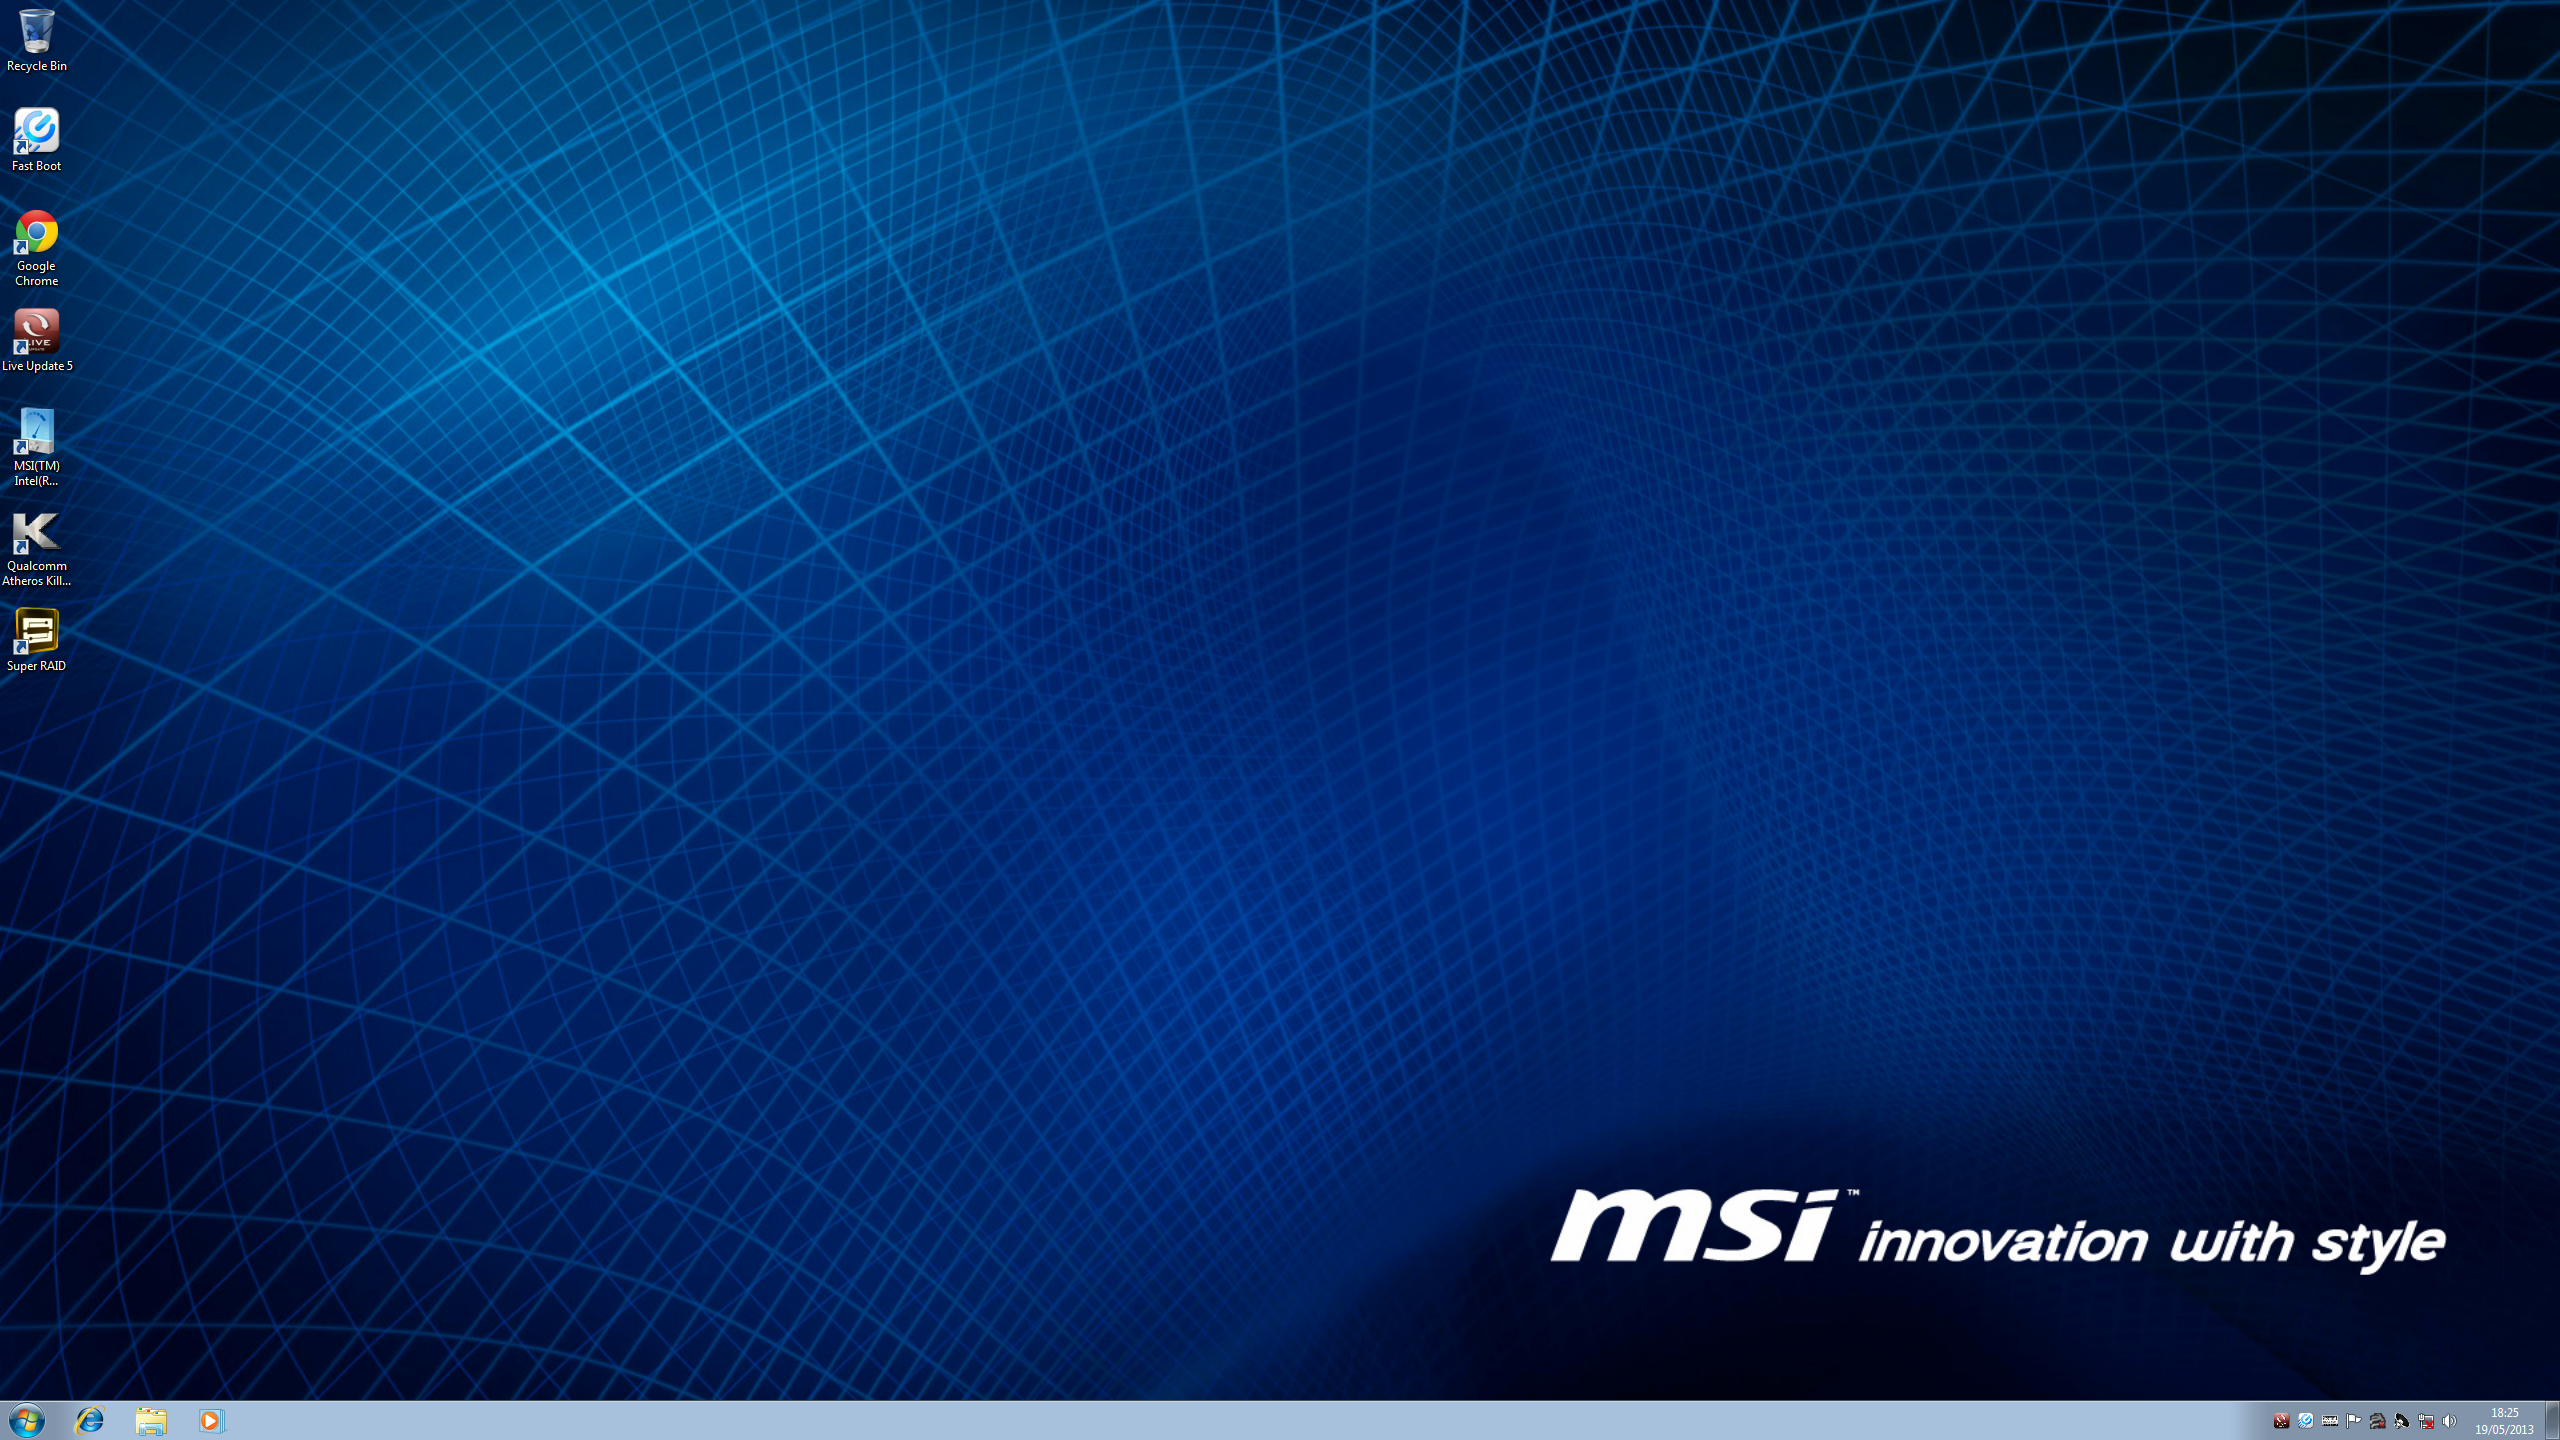 download wallpaper msi hd